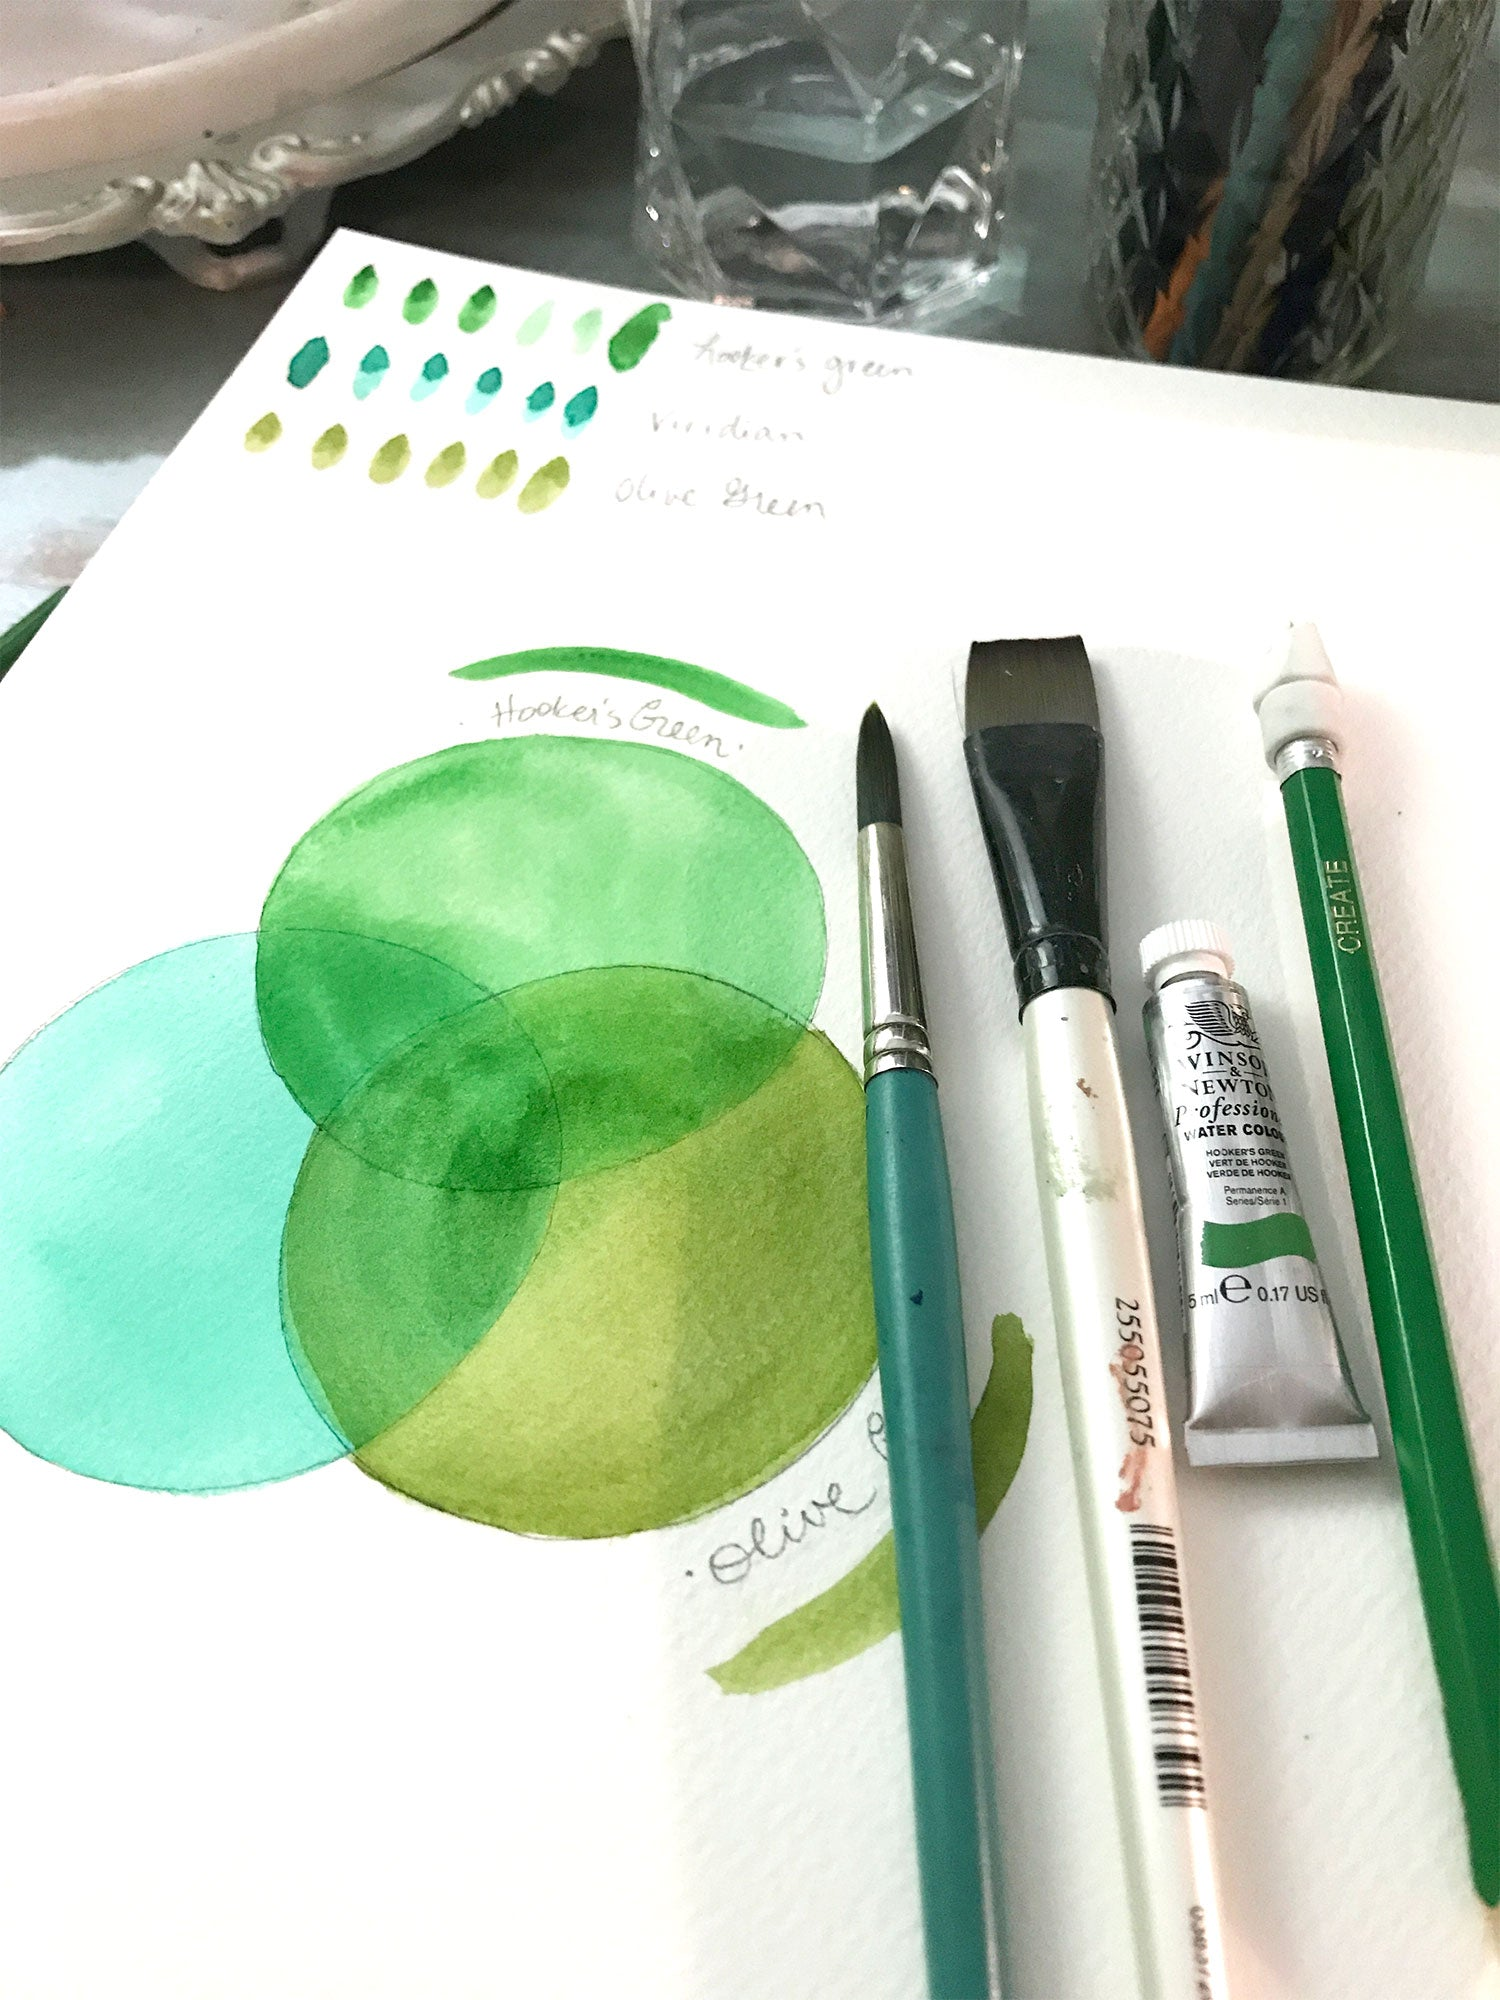 Hookers Green Veridian and Olive Green Watercolor by Erika Firm